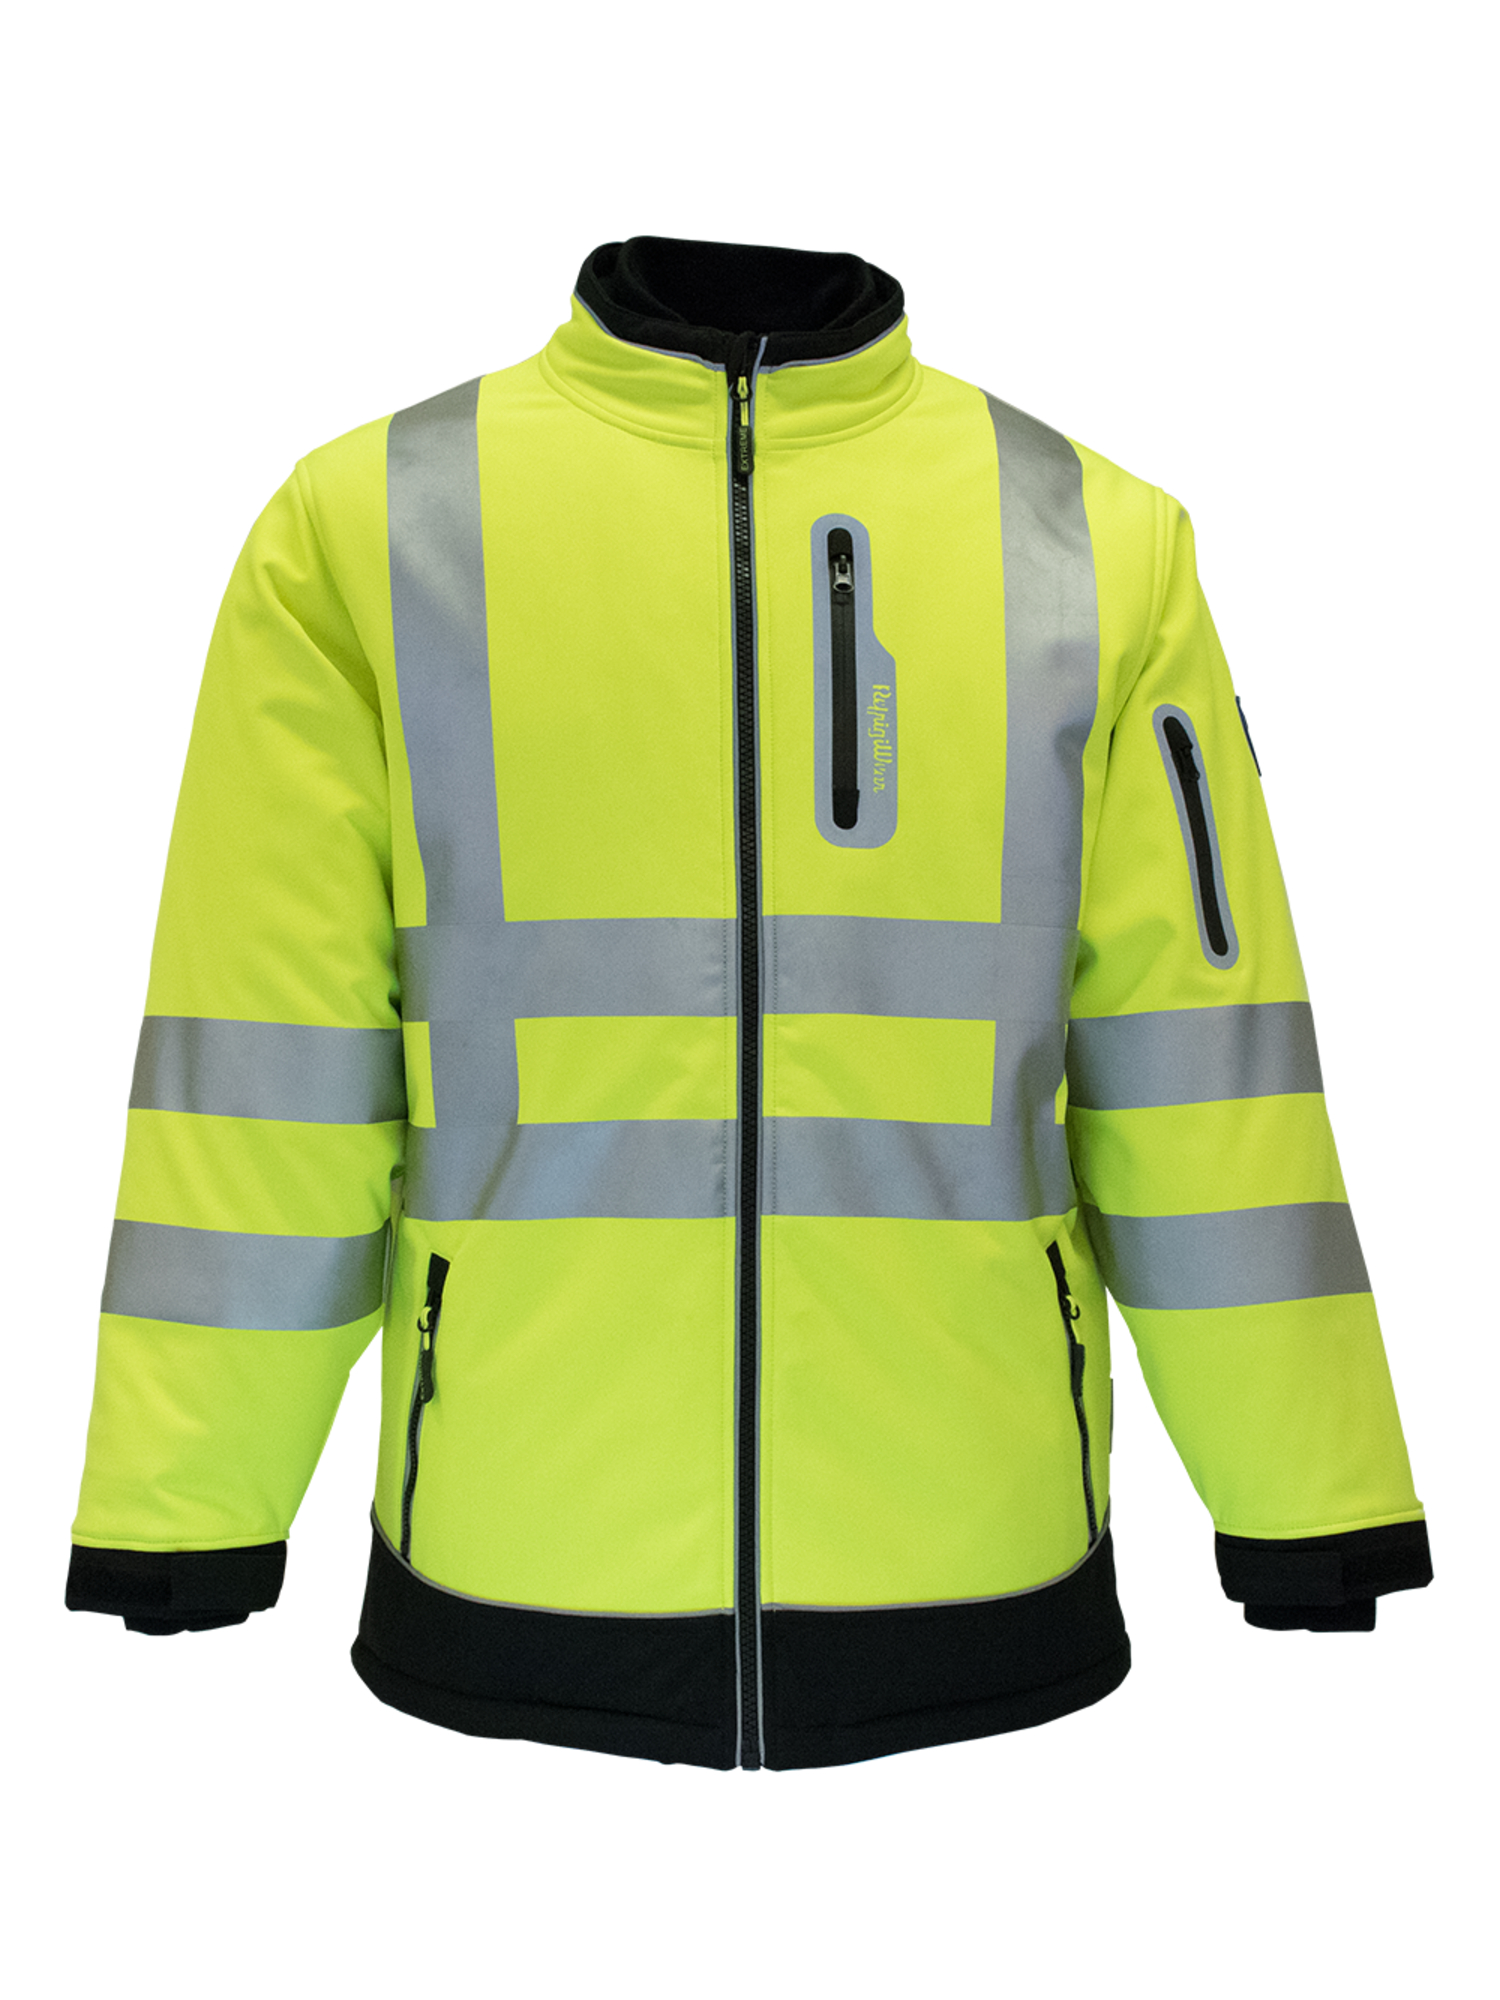 RefrigiWear Men's Insulated HiVis Extreme Softshell Jacket with Reflective Tape